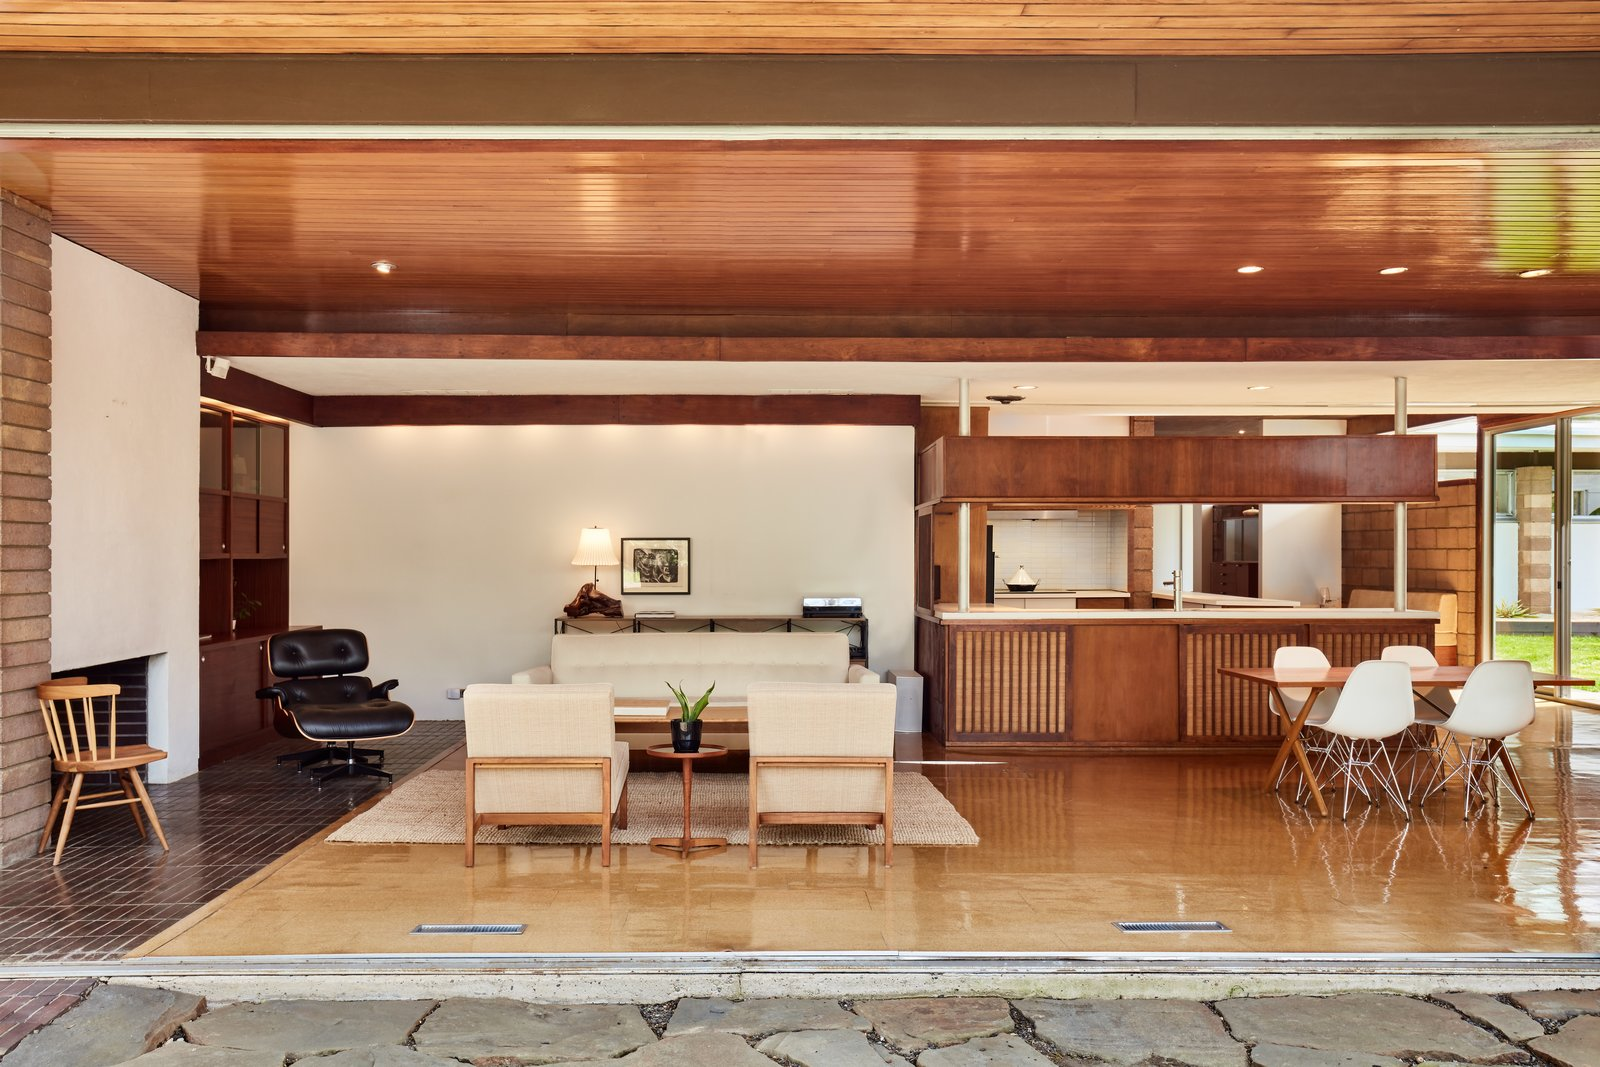 Photo 5 of 13 in The Stunningly Restored Hassrick Residence by Richard Neutra Hits the Market at $2.2M